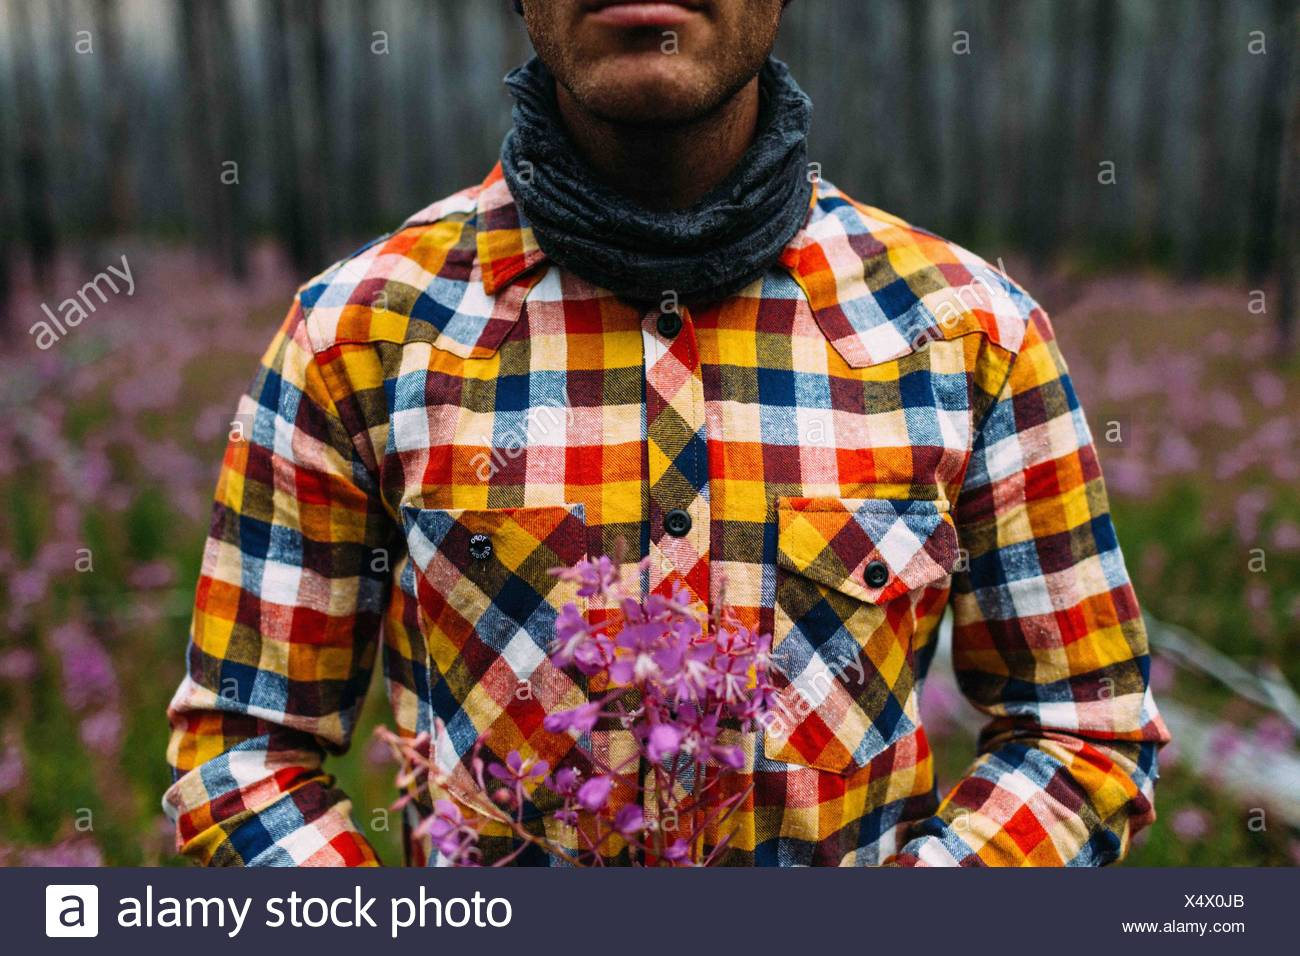 Cropped view of mid adult man wearing checked shirt holding wildflowers, Moraine lake, Banff National Park, Alberta Canada - Stock Image